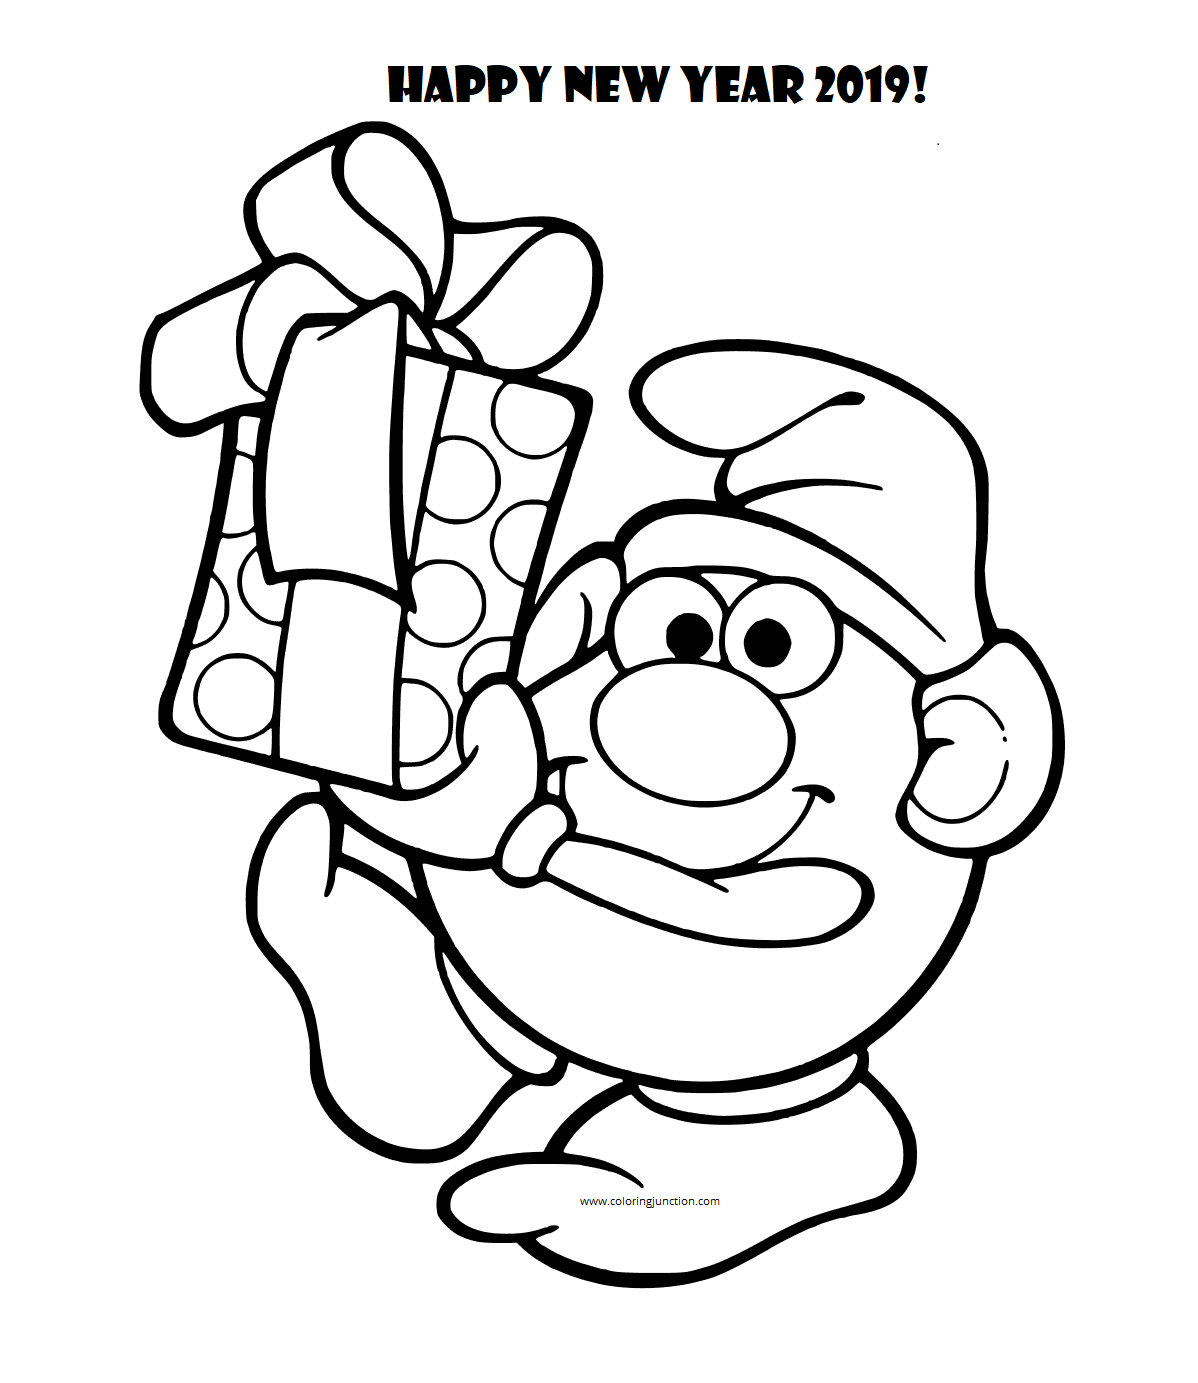 New Year 2019 Colouring Pictures To Print